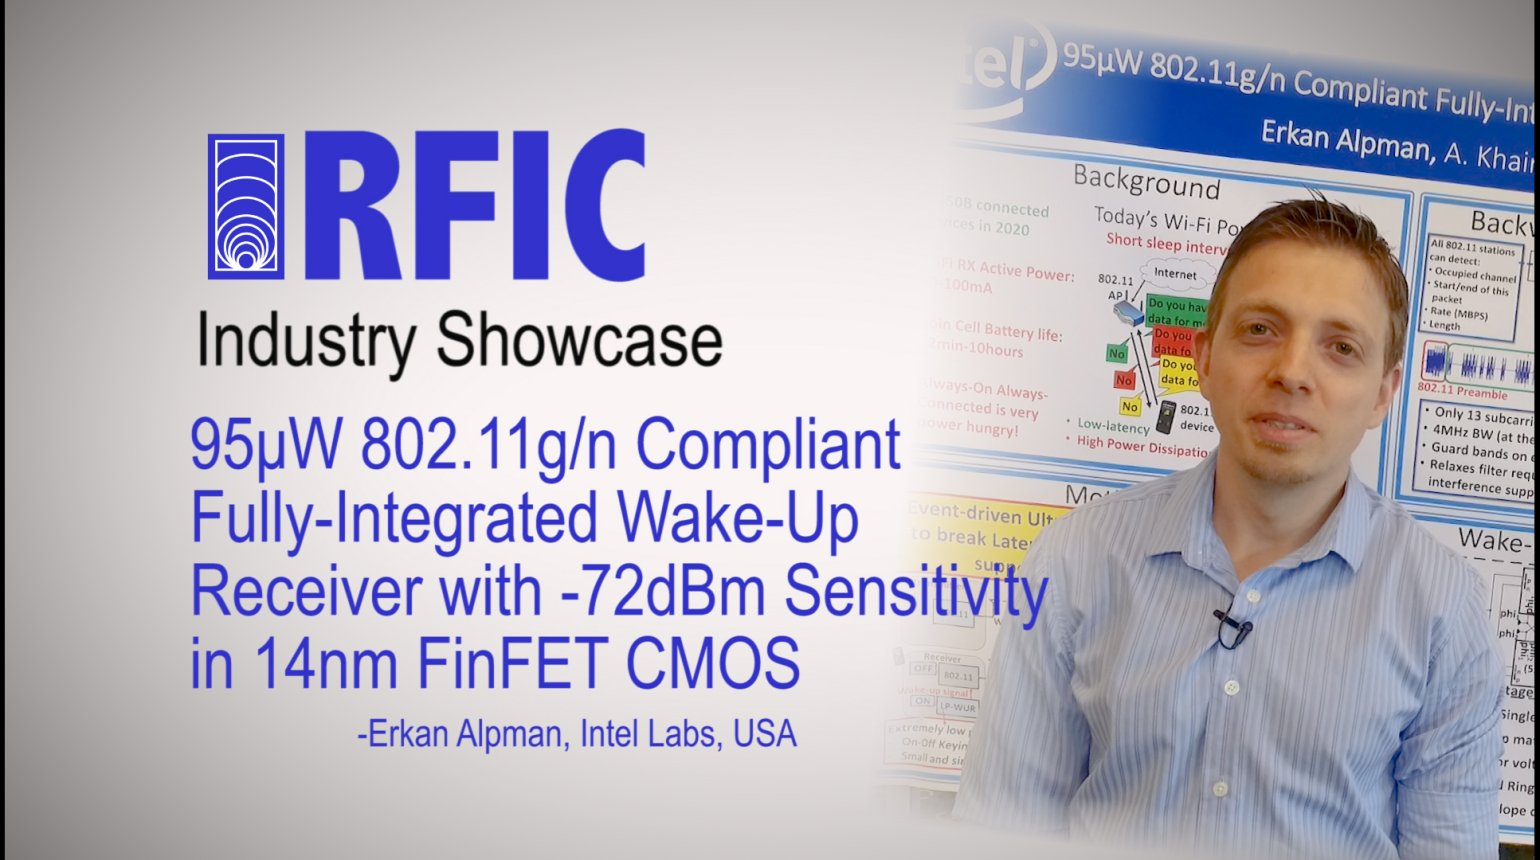 95uW 802.11g/n compliant fully-integrated wake-up receiver with -72dBm sensitivity in 14nm FinFET CMOS: RFIC Industry Showcase 2017